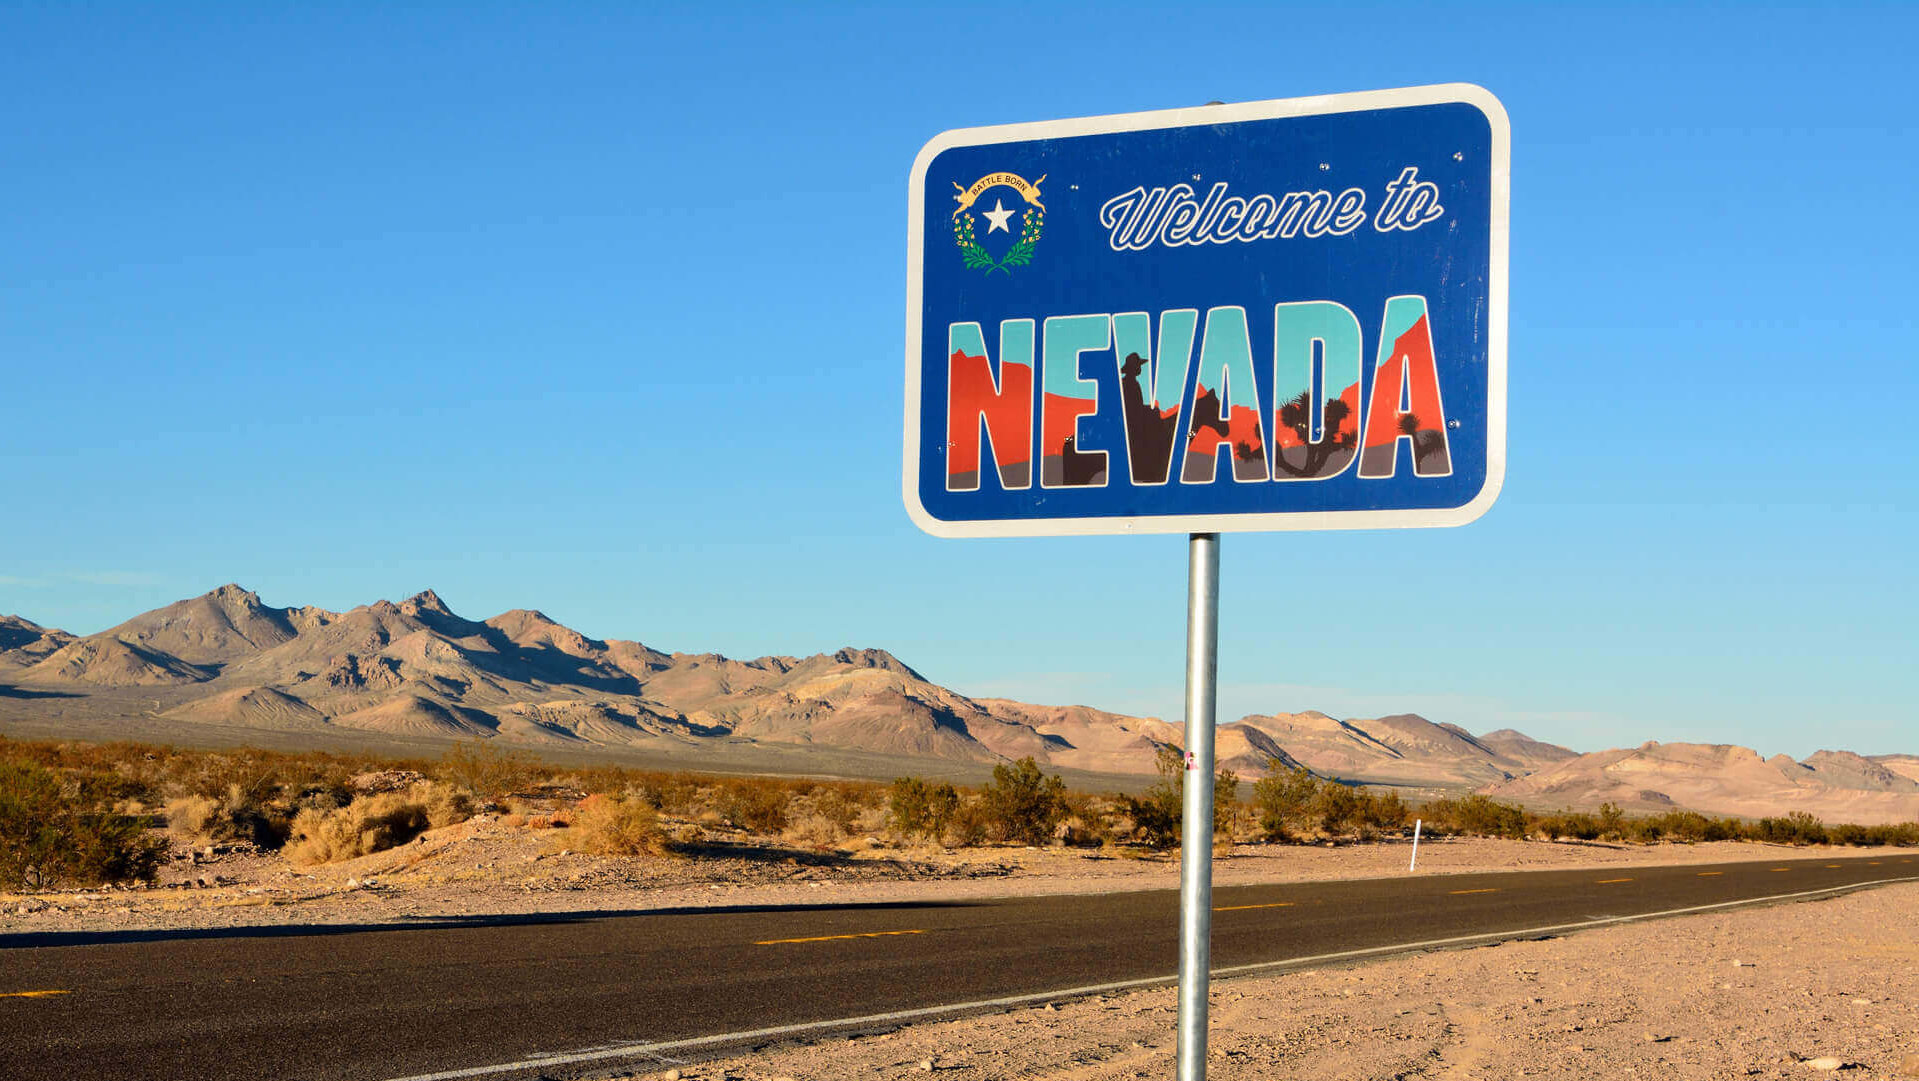 Nevada state sign